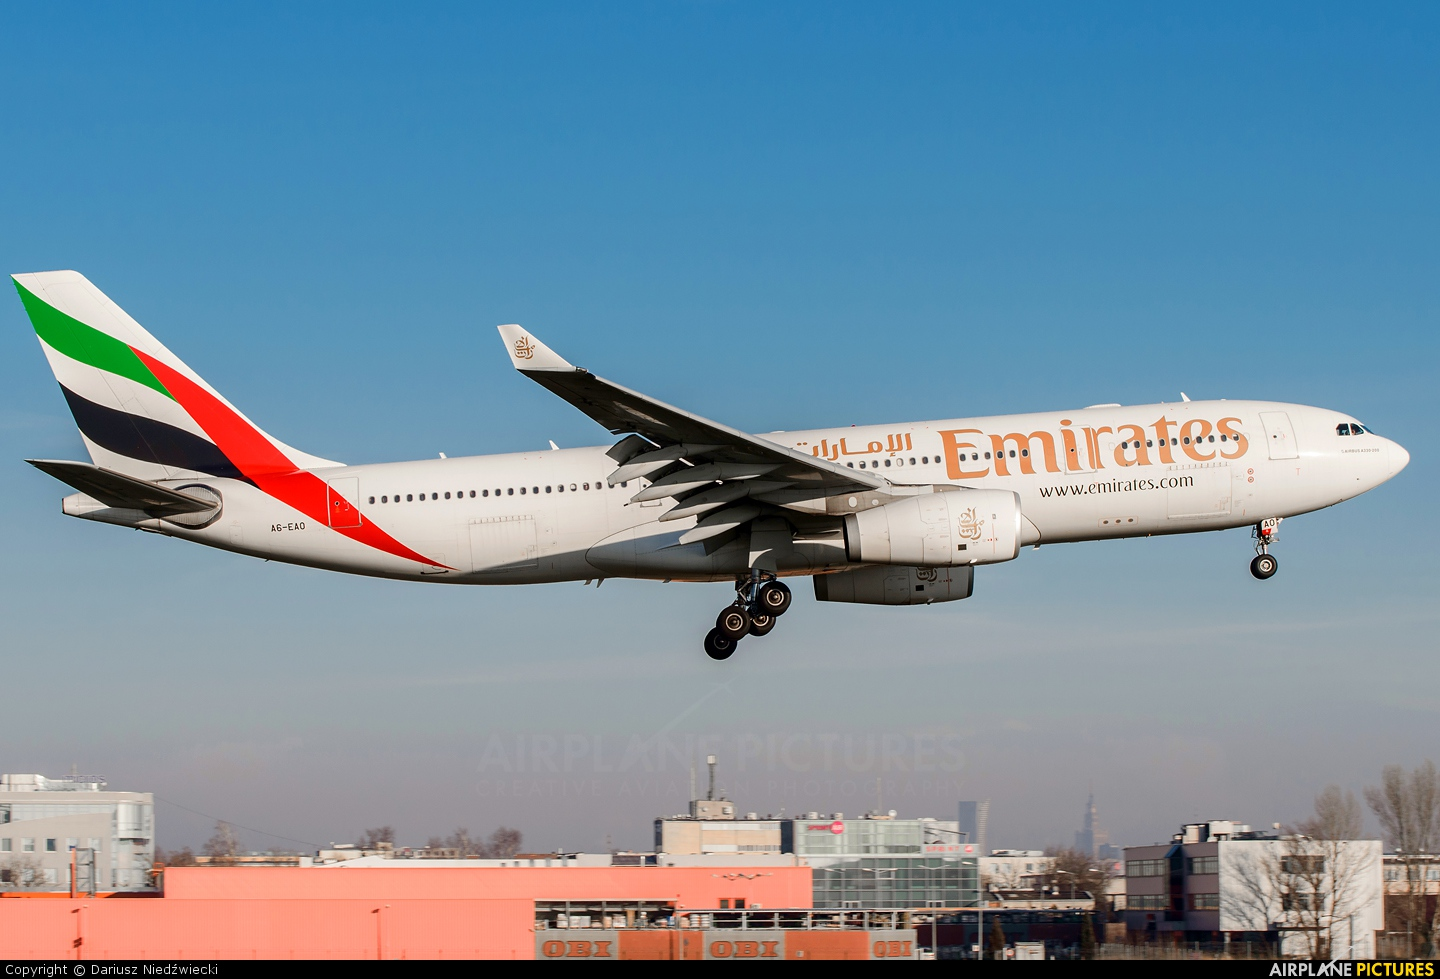 Emirates Airlines A6-EAO aircraft at Warsaw - Frederic Chopin